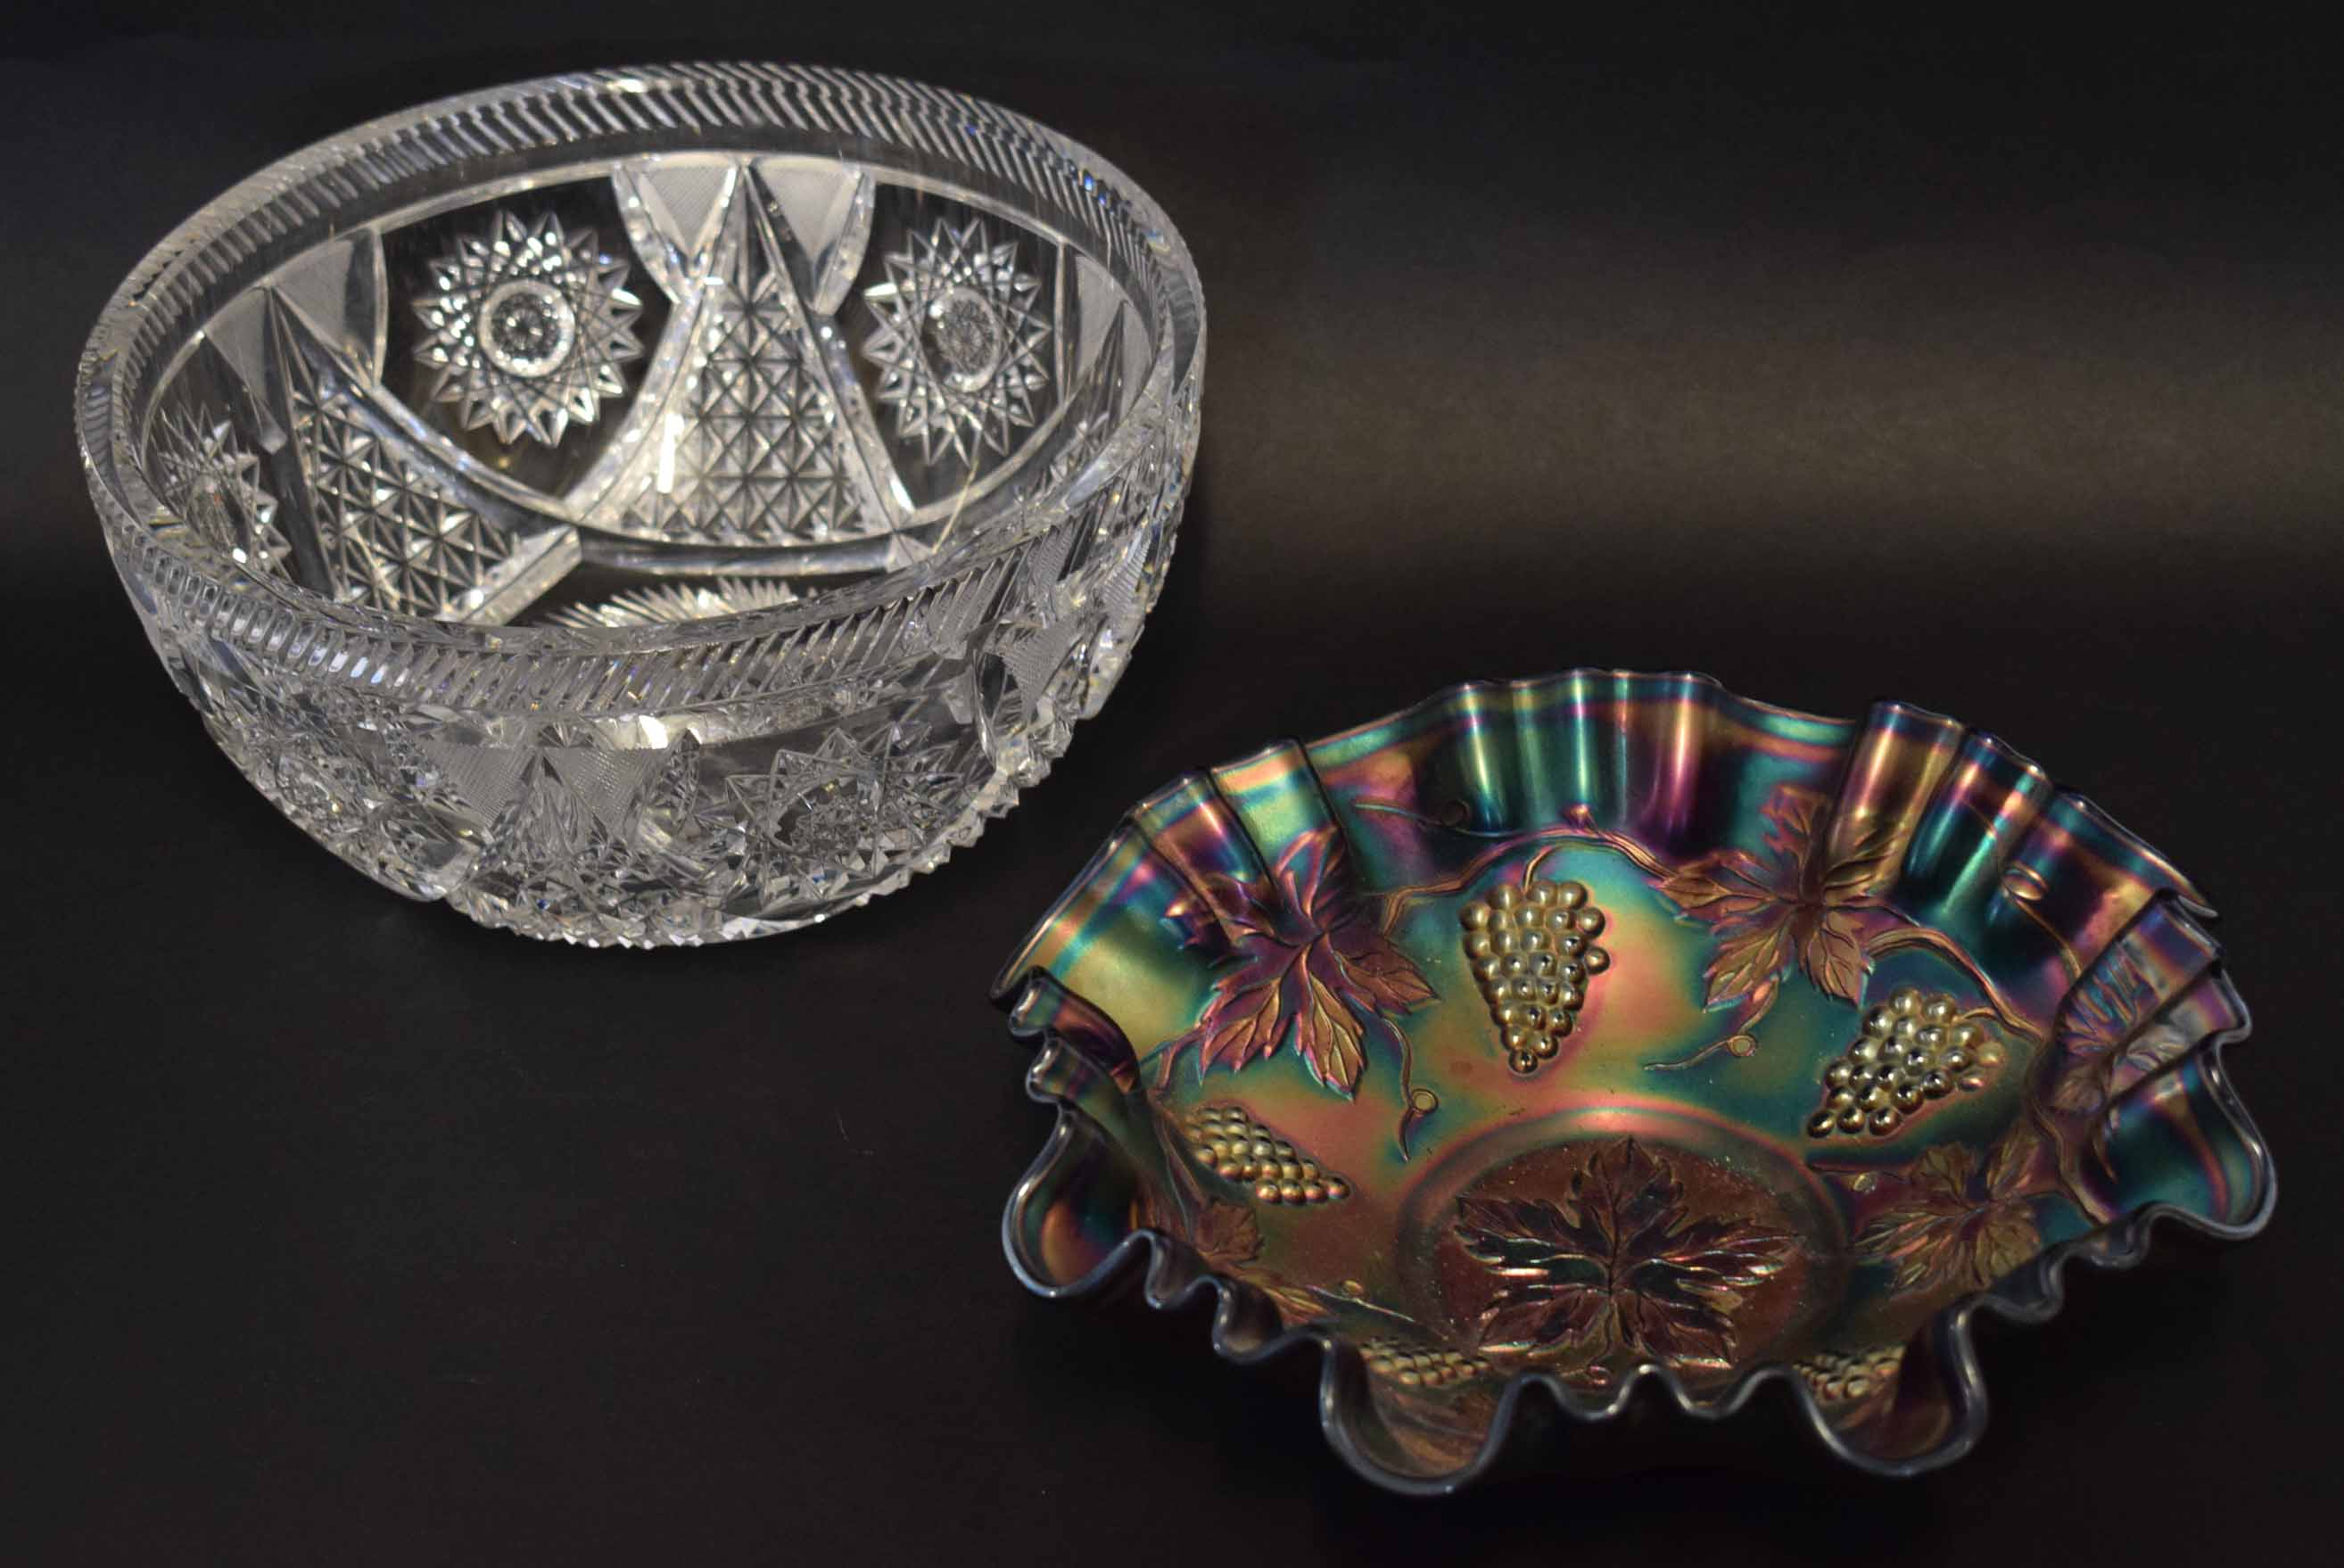 Lot 53 - Carnival glass bowl together with a cut glass bowl with star design, largest 21cm